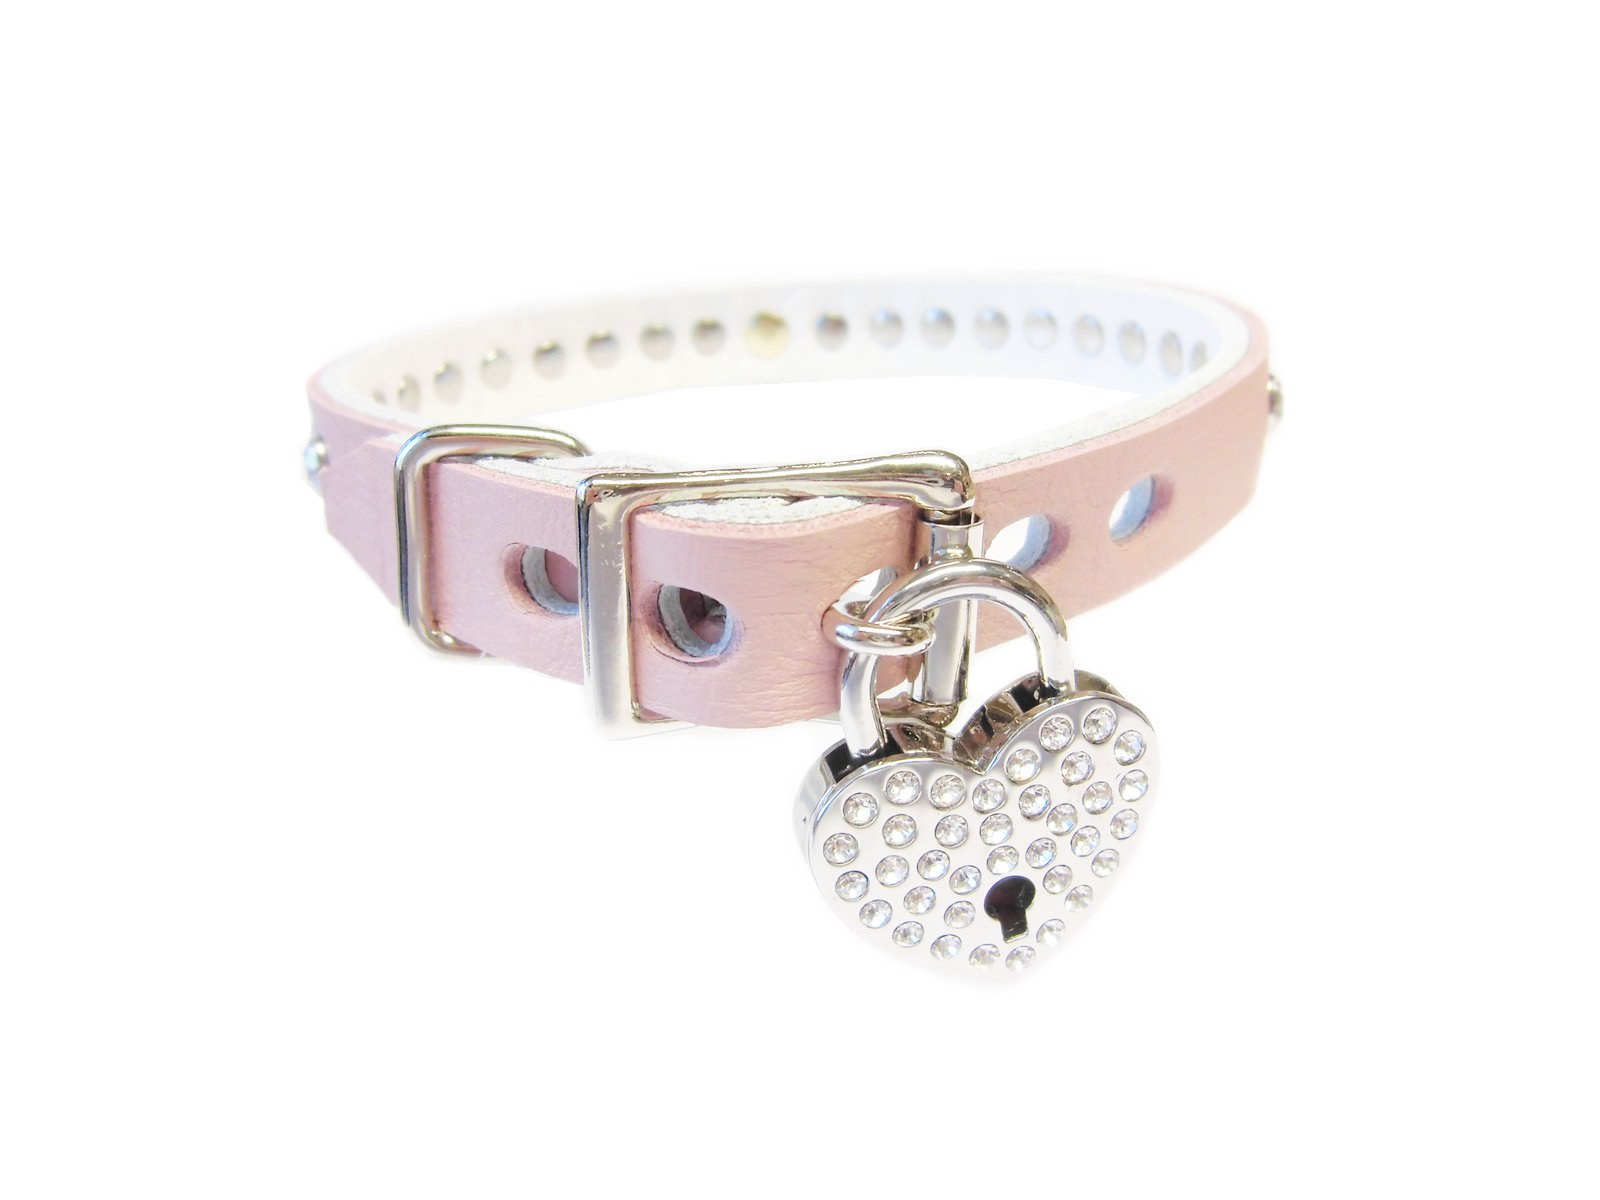 lockable buckle - rhinestone heart padlock